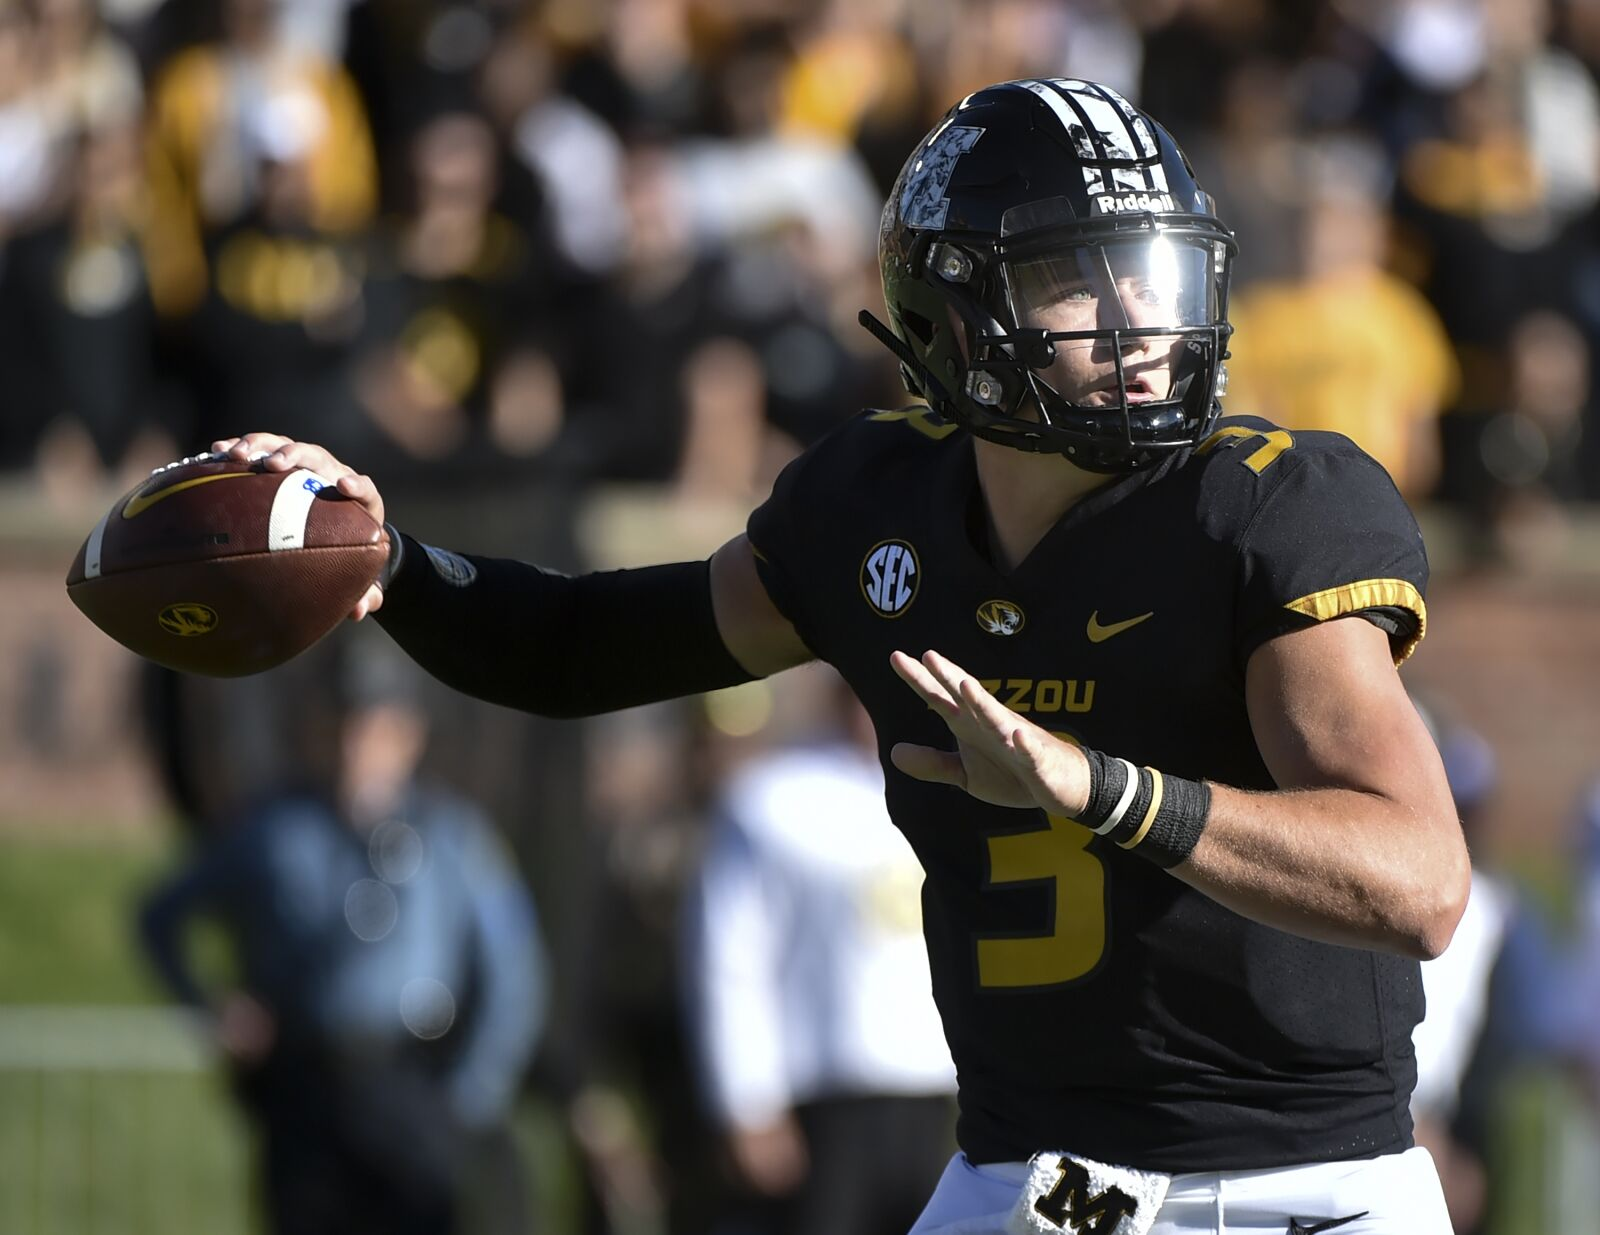 Denver Broncos approach with Drew Lock unmistakably correct